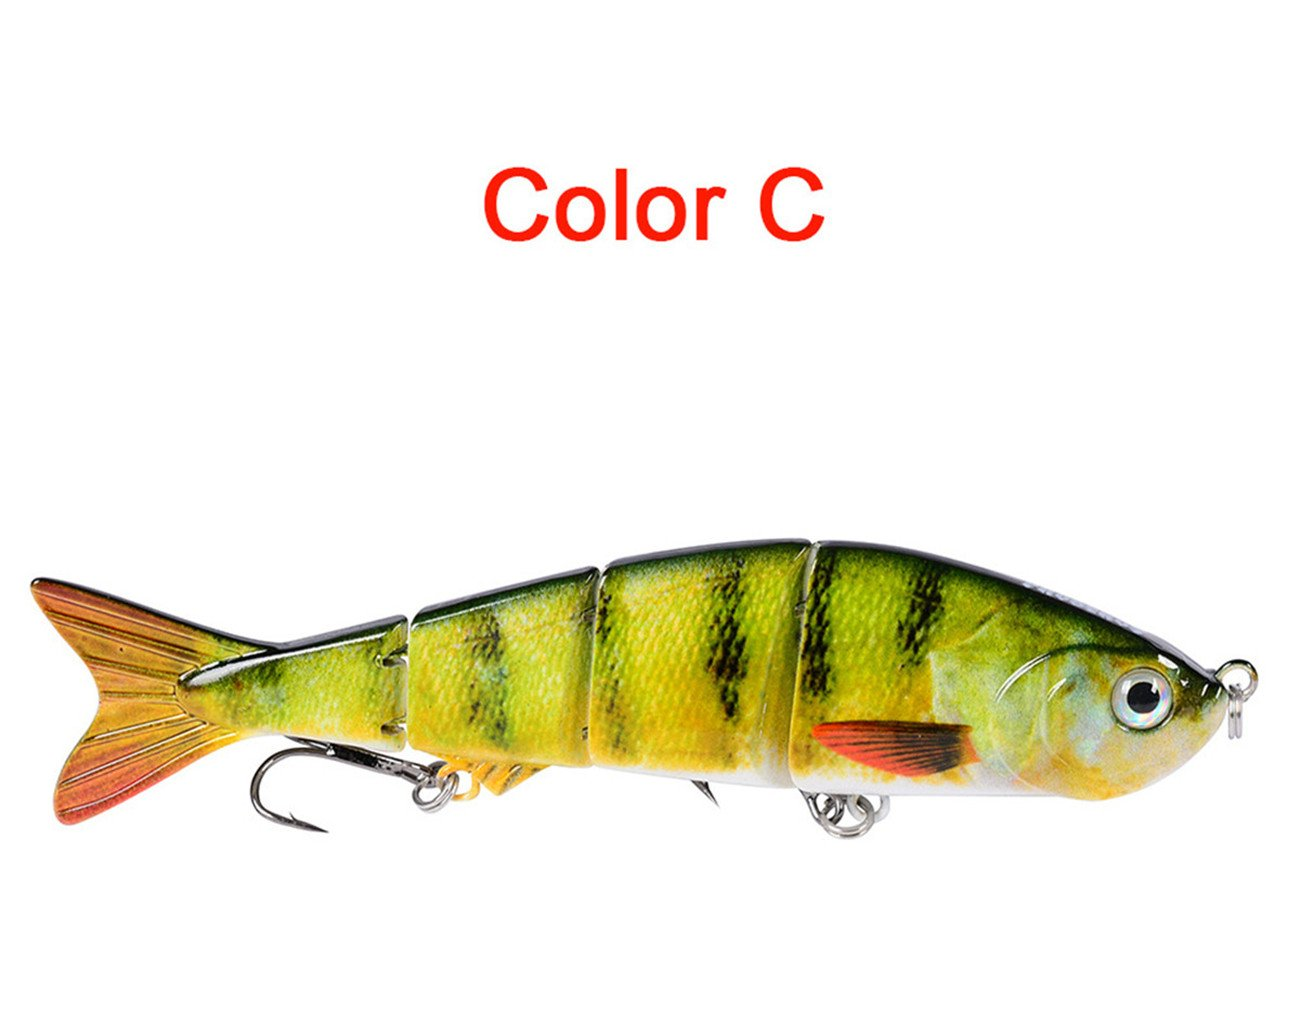 Life-like Multi-section Floating Lures,12cm//17g Classic Lure Bait Plastic Hard Bait 7 Random Colour MKNzone 1 pc Multi-jointed Fishing Lure